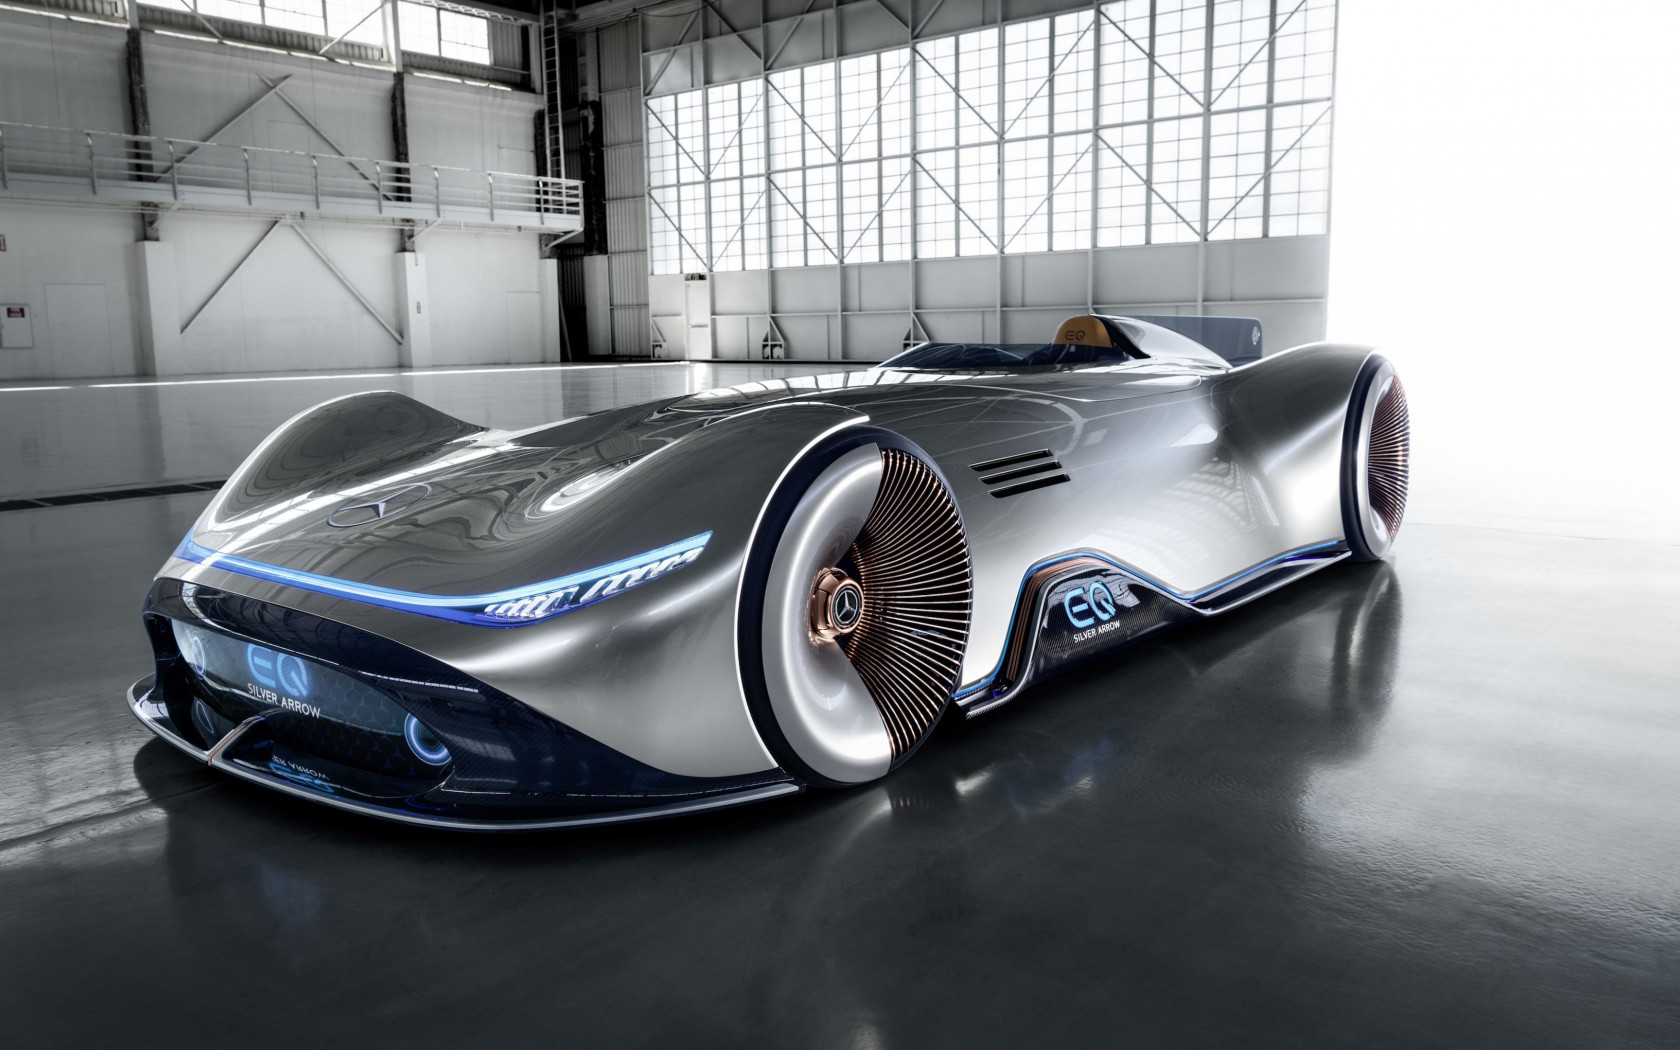 Mercedes Benz Vision EQ Silver Arrow wallpaper 1680x1050